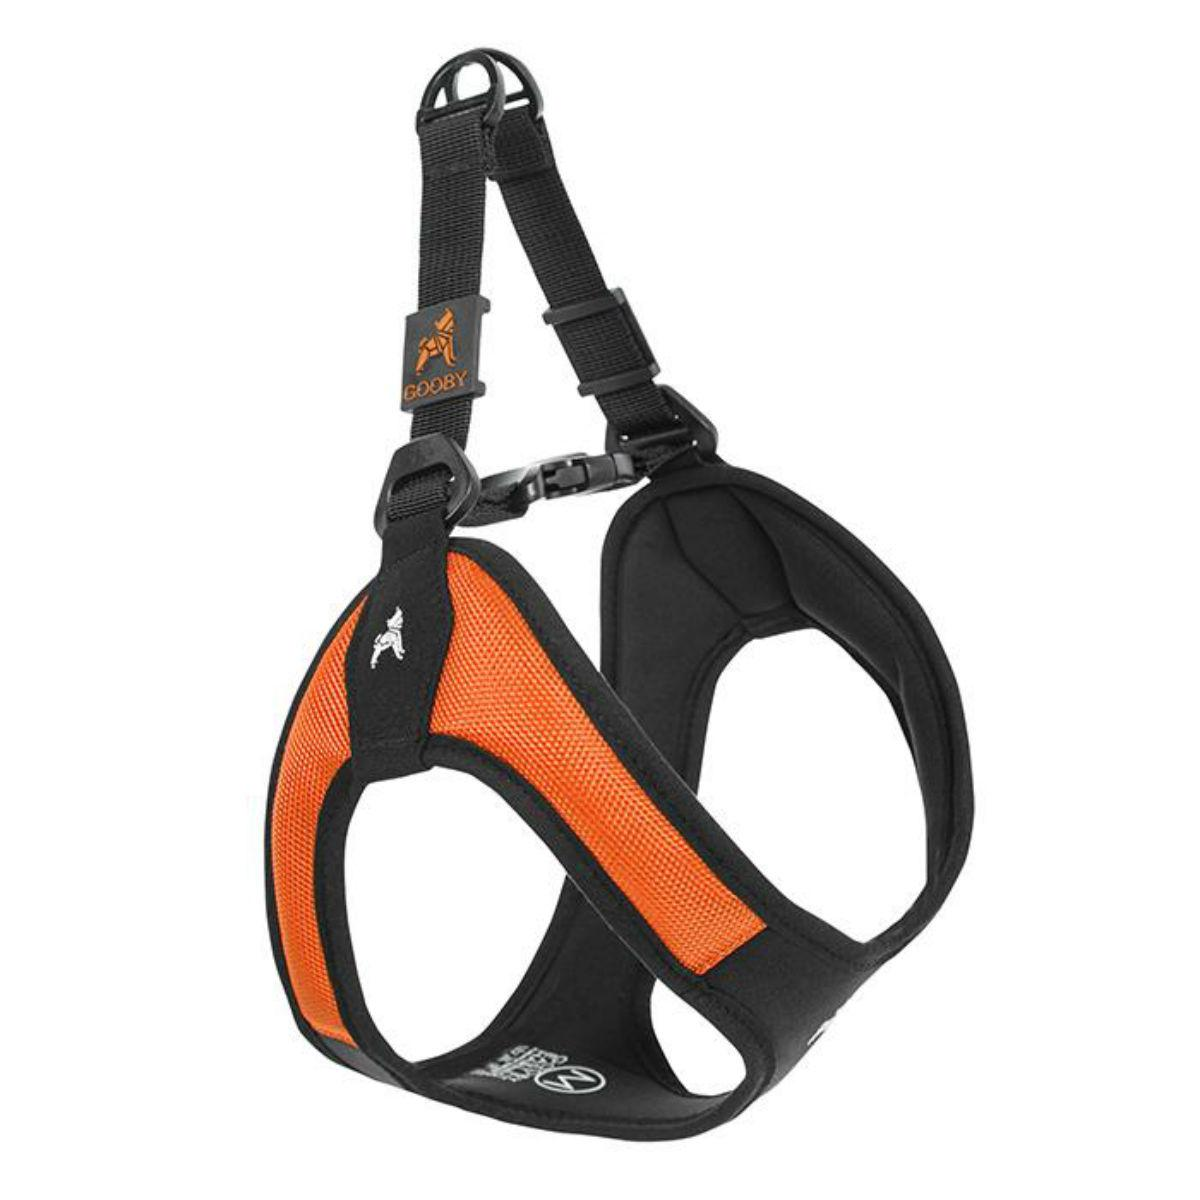 Gooby Escape Proof Easy Fit Dog Harness - Orange